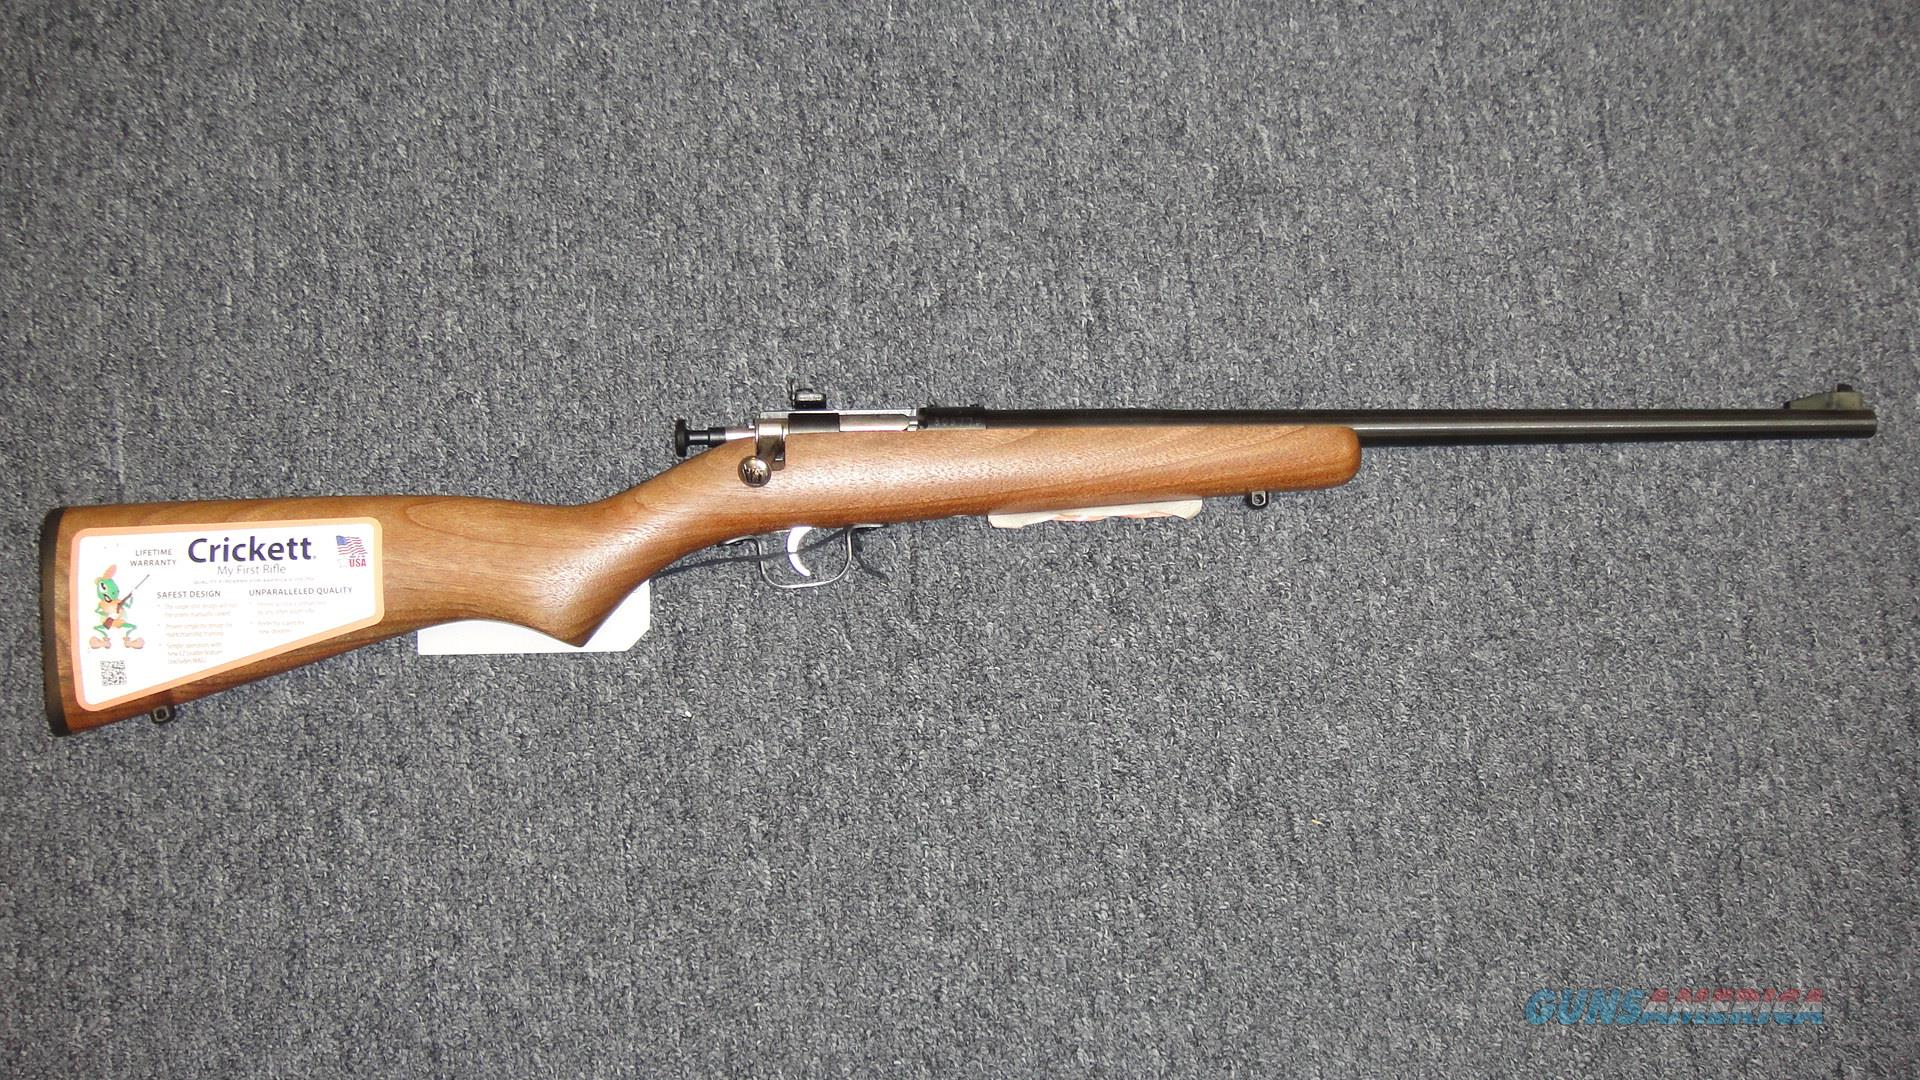 Keystone Sporting Crickett  Guns > Rifles > Crickett-Keystone Rifles